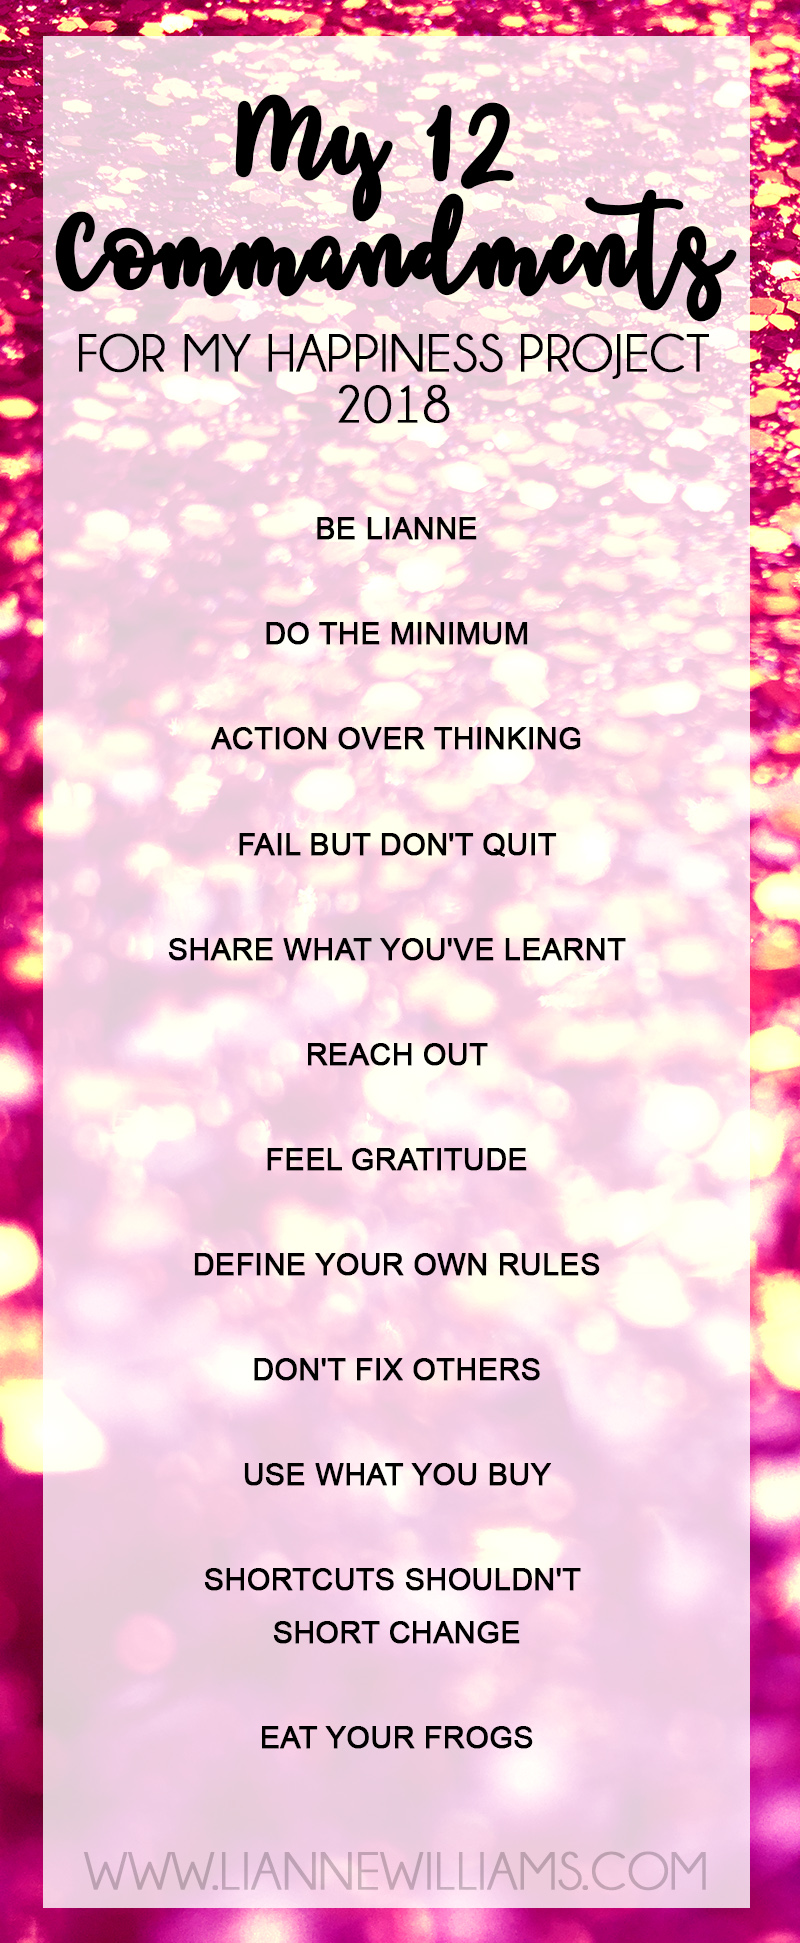 My 12 commandments for The Happiness Project.jpg